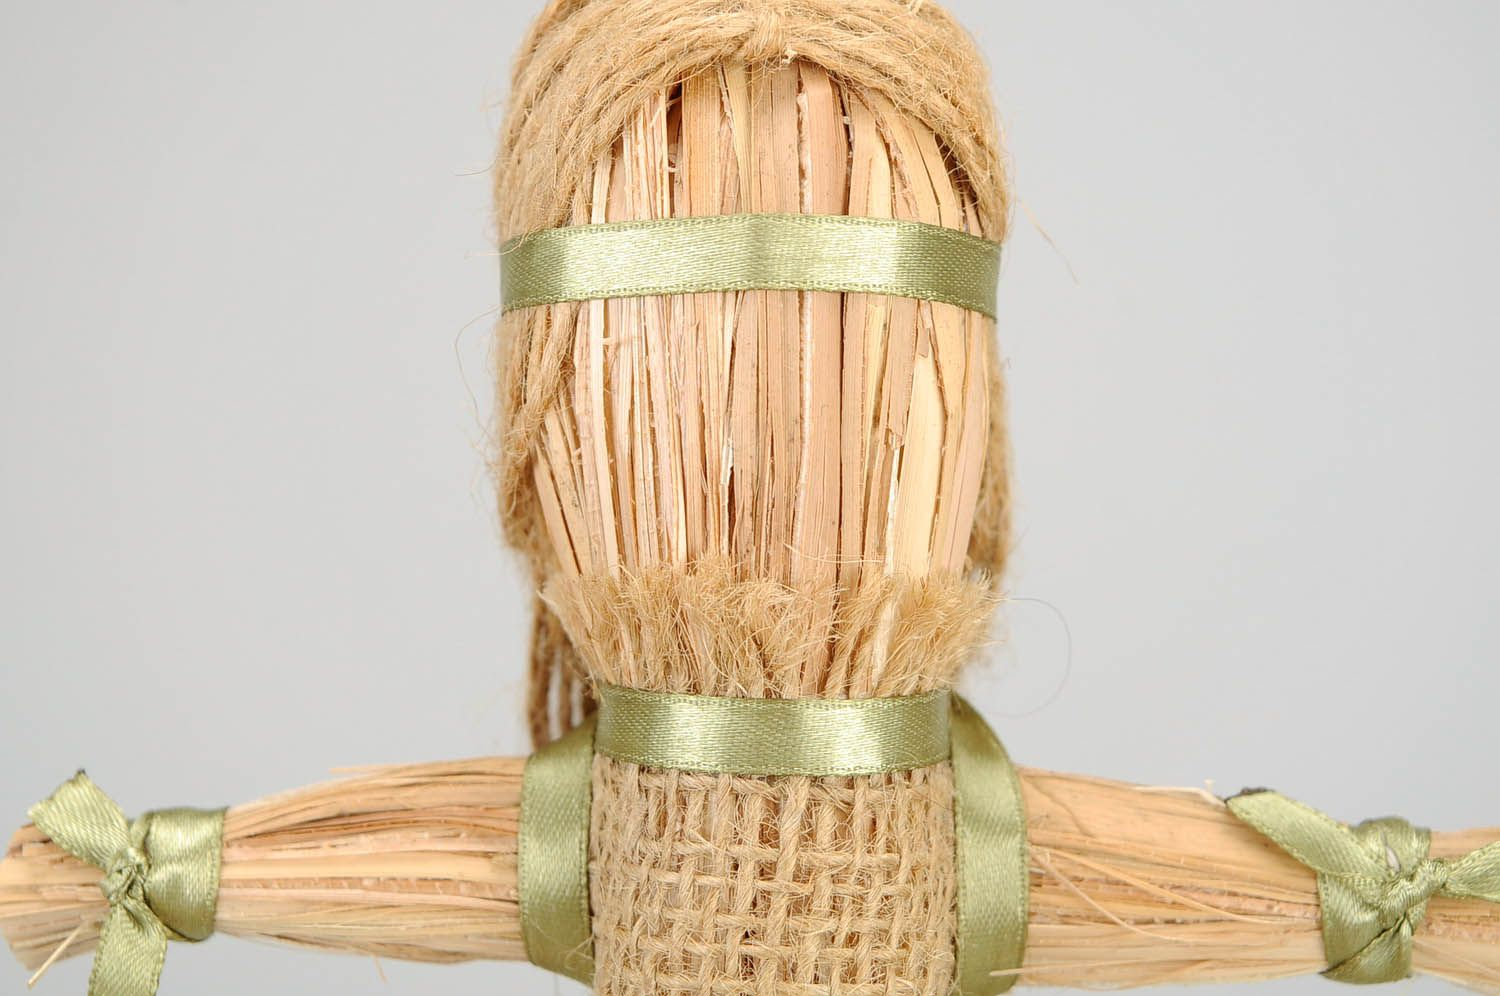 Amulet doll made of linen cord photo 5